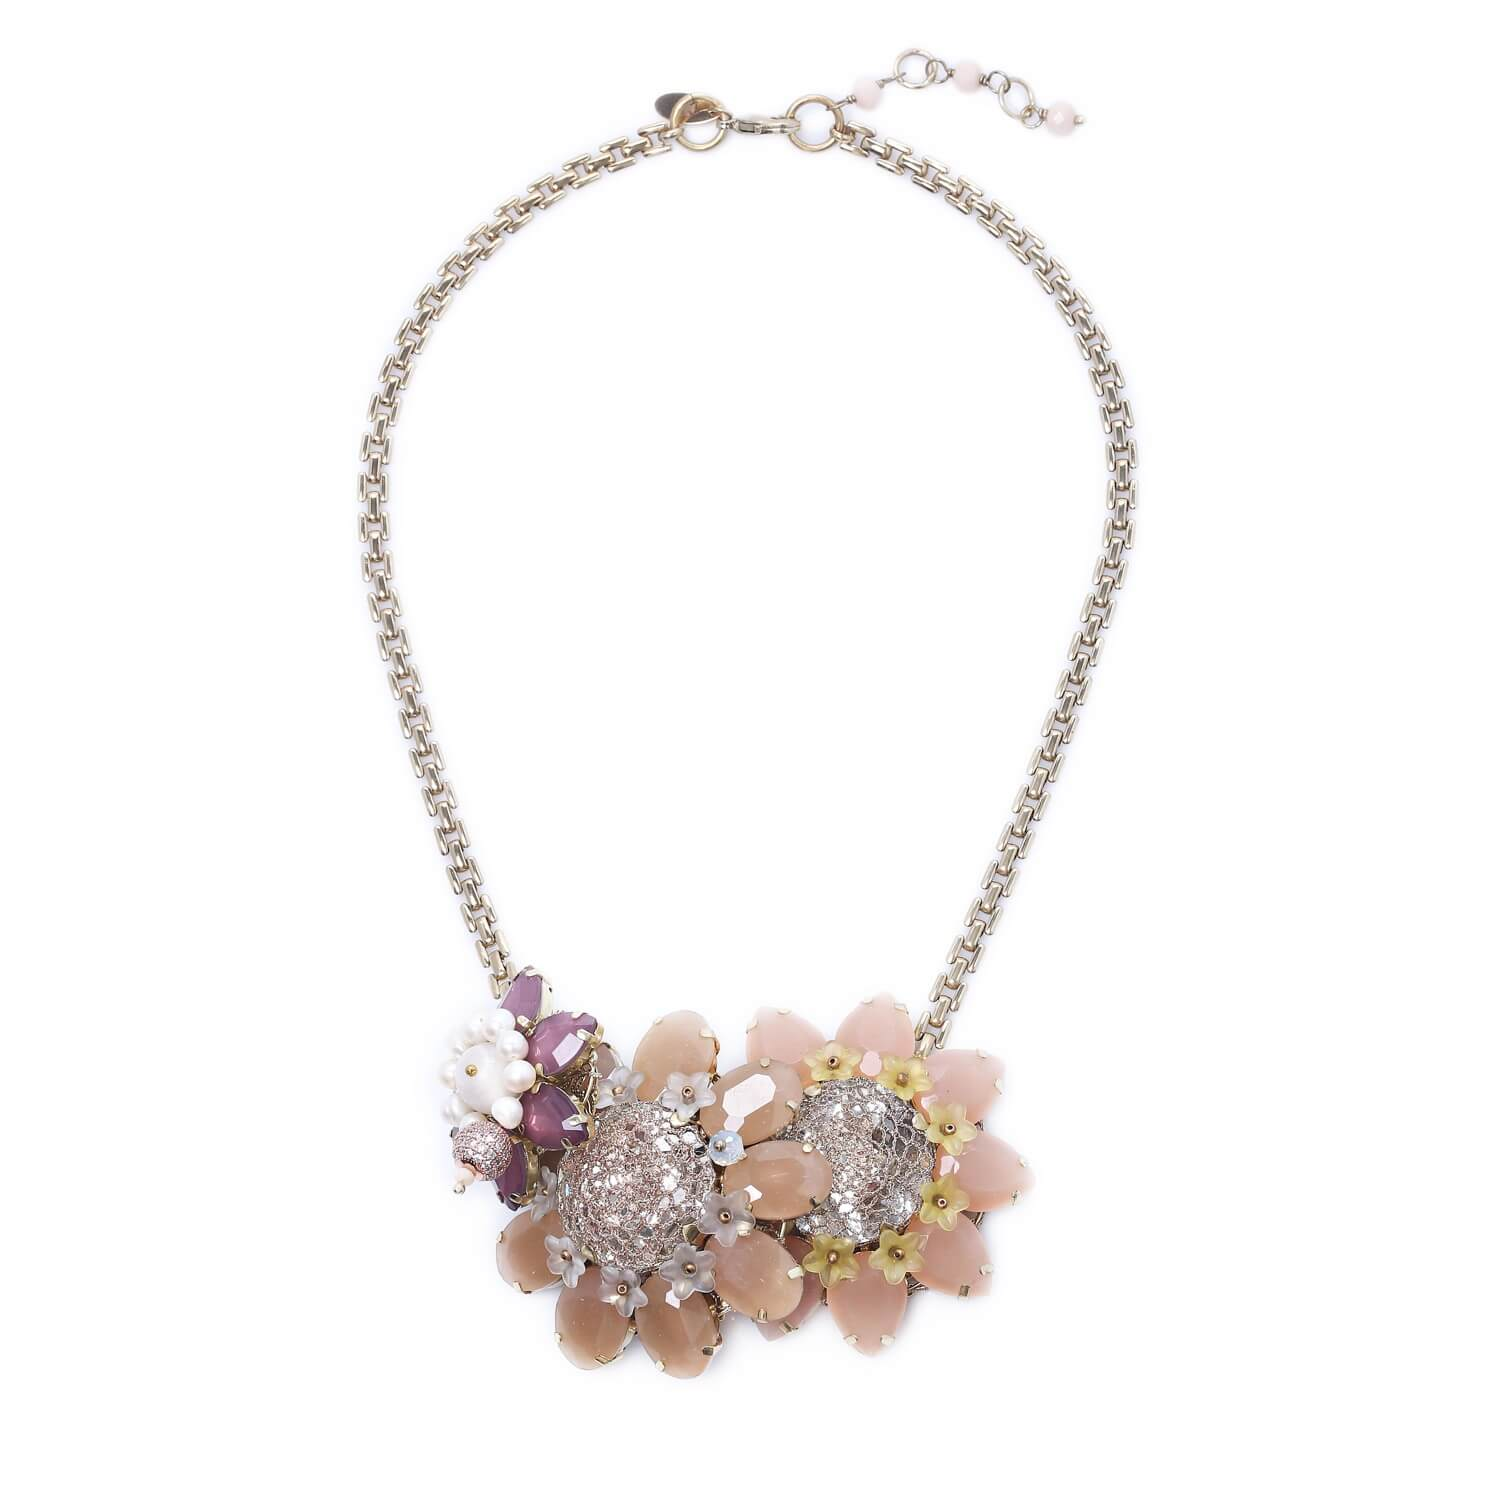 Venus Sun Flower Trio Crystal Necklace - Pastel Blush Peach